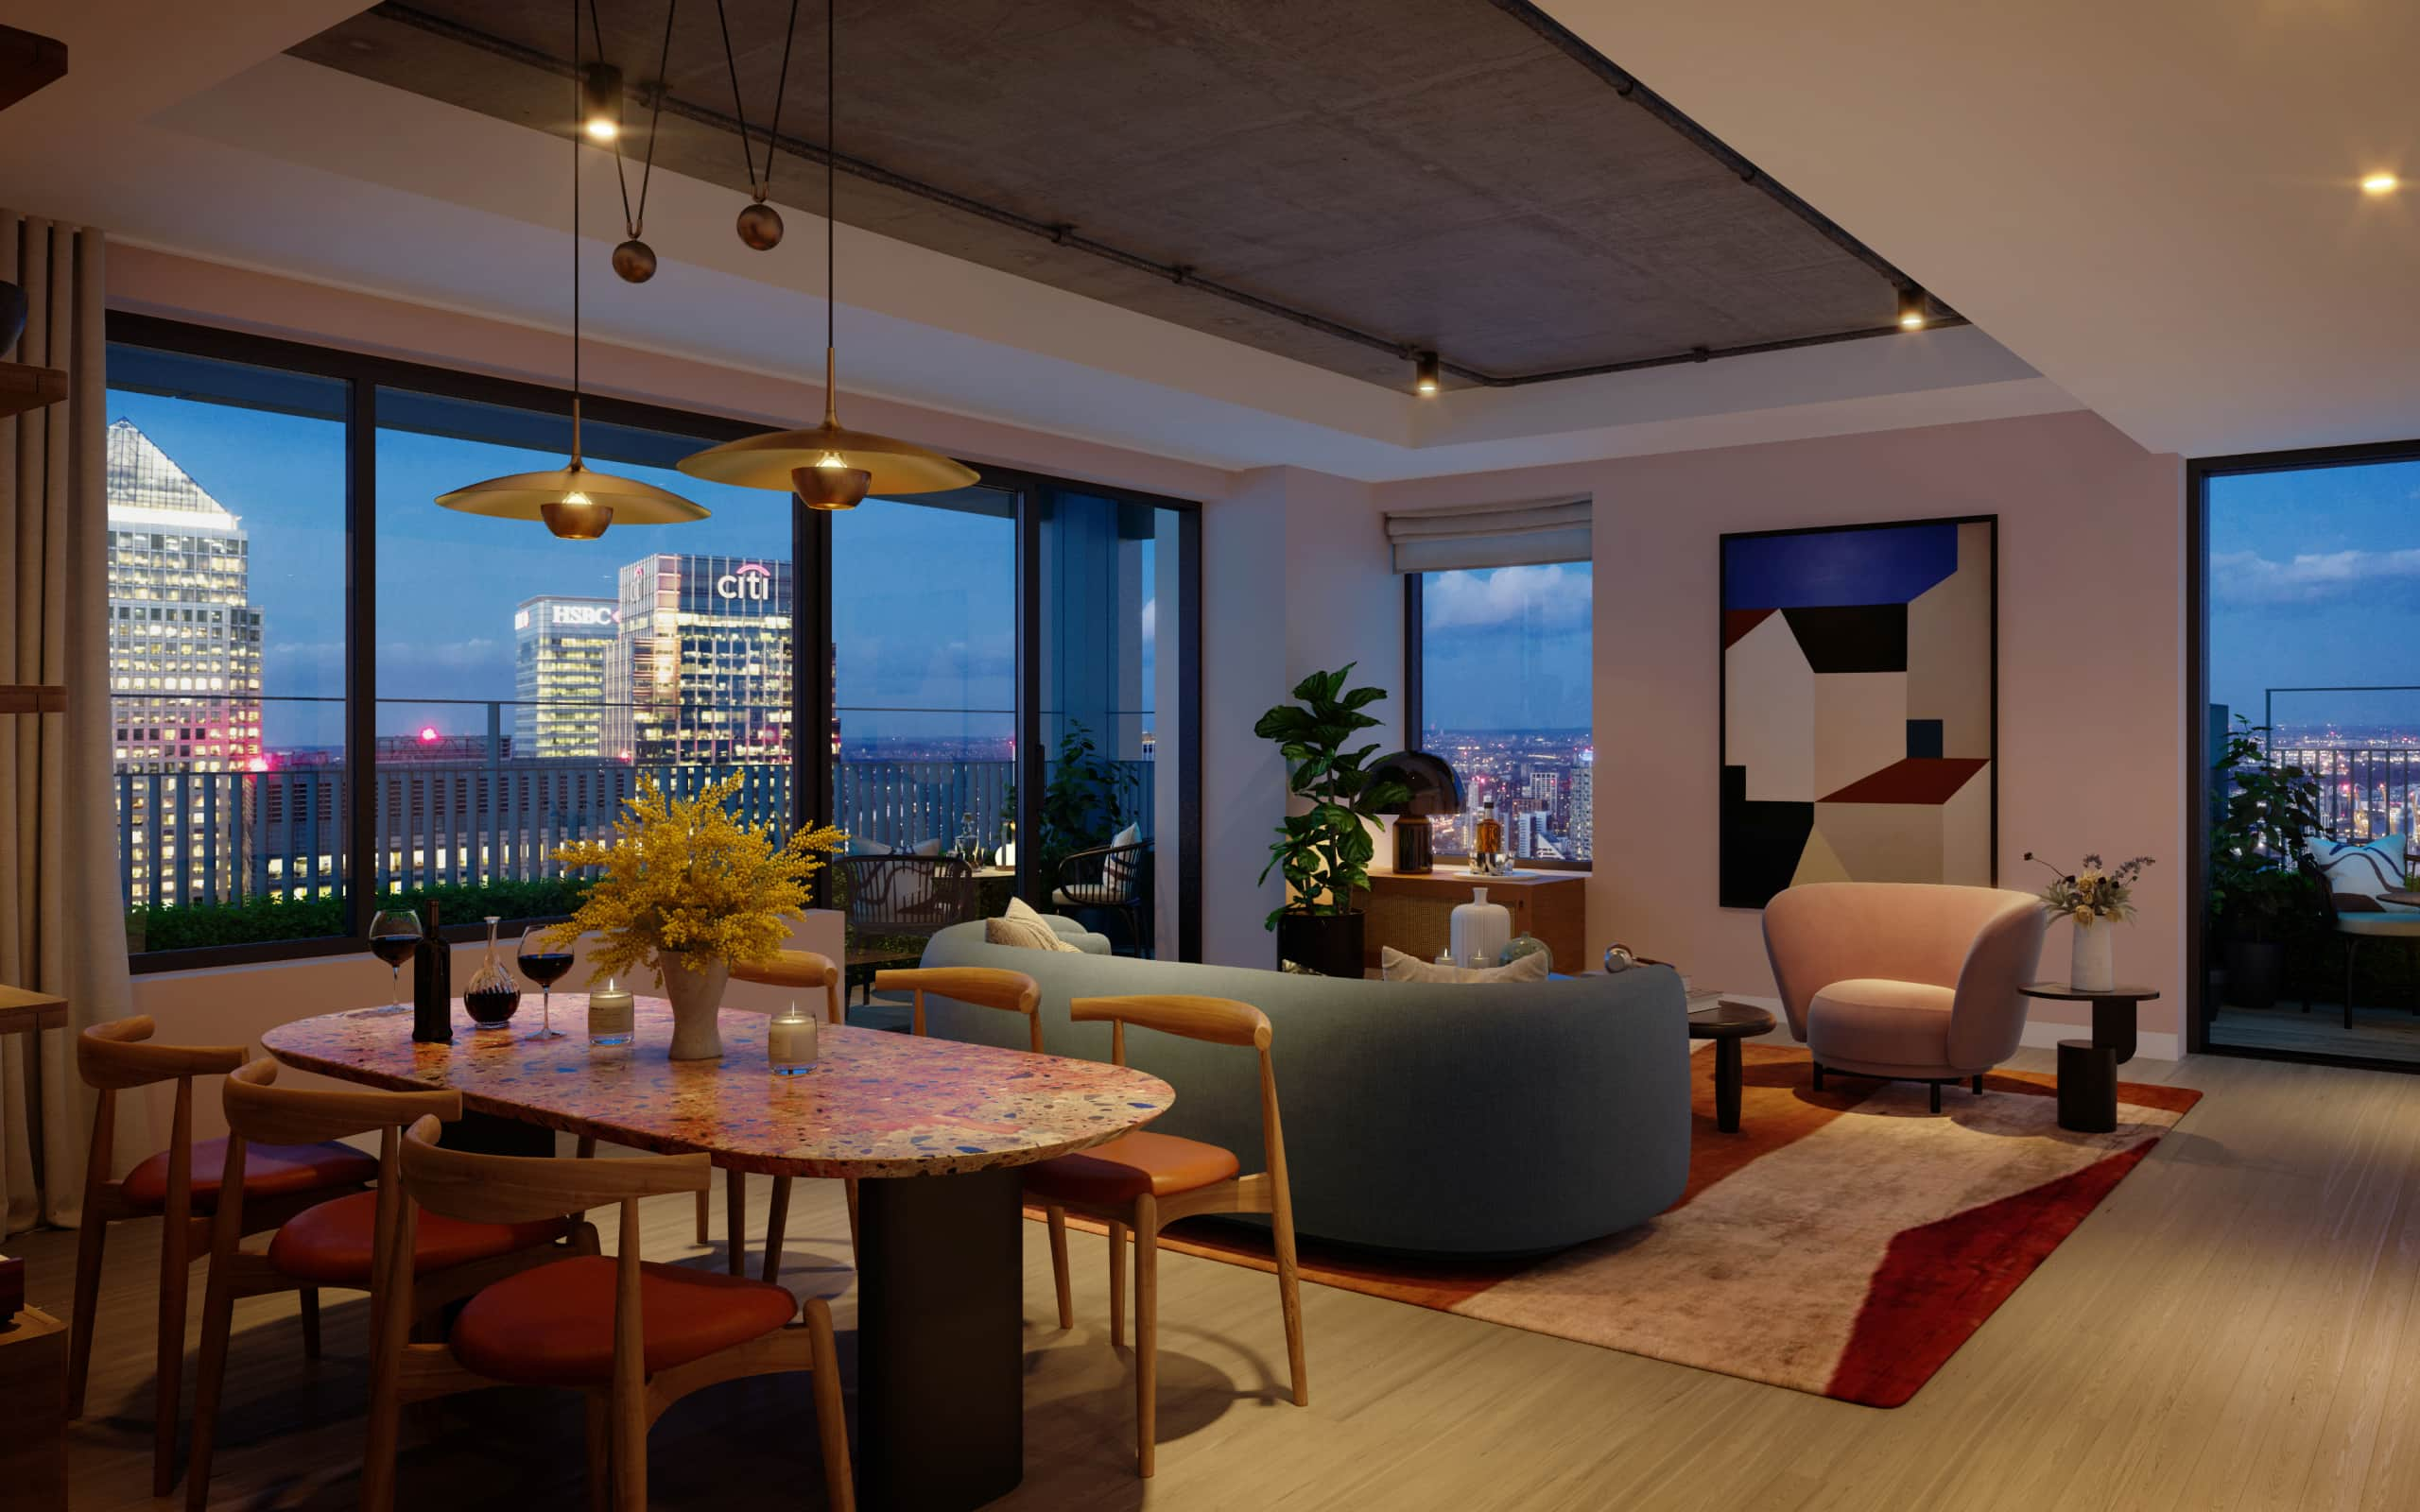 https://www.millharbour.co.uk/wp-content/uploads/2020/08/mill-harbour-apartment-three-bed-MOB-2560px.jpg